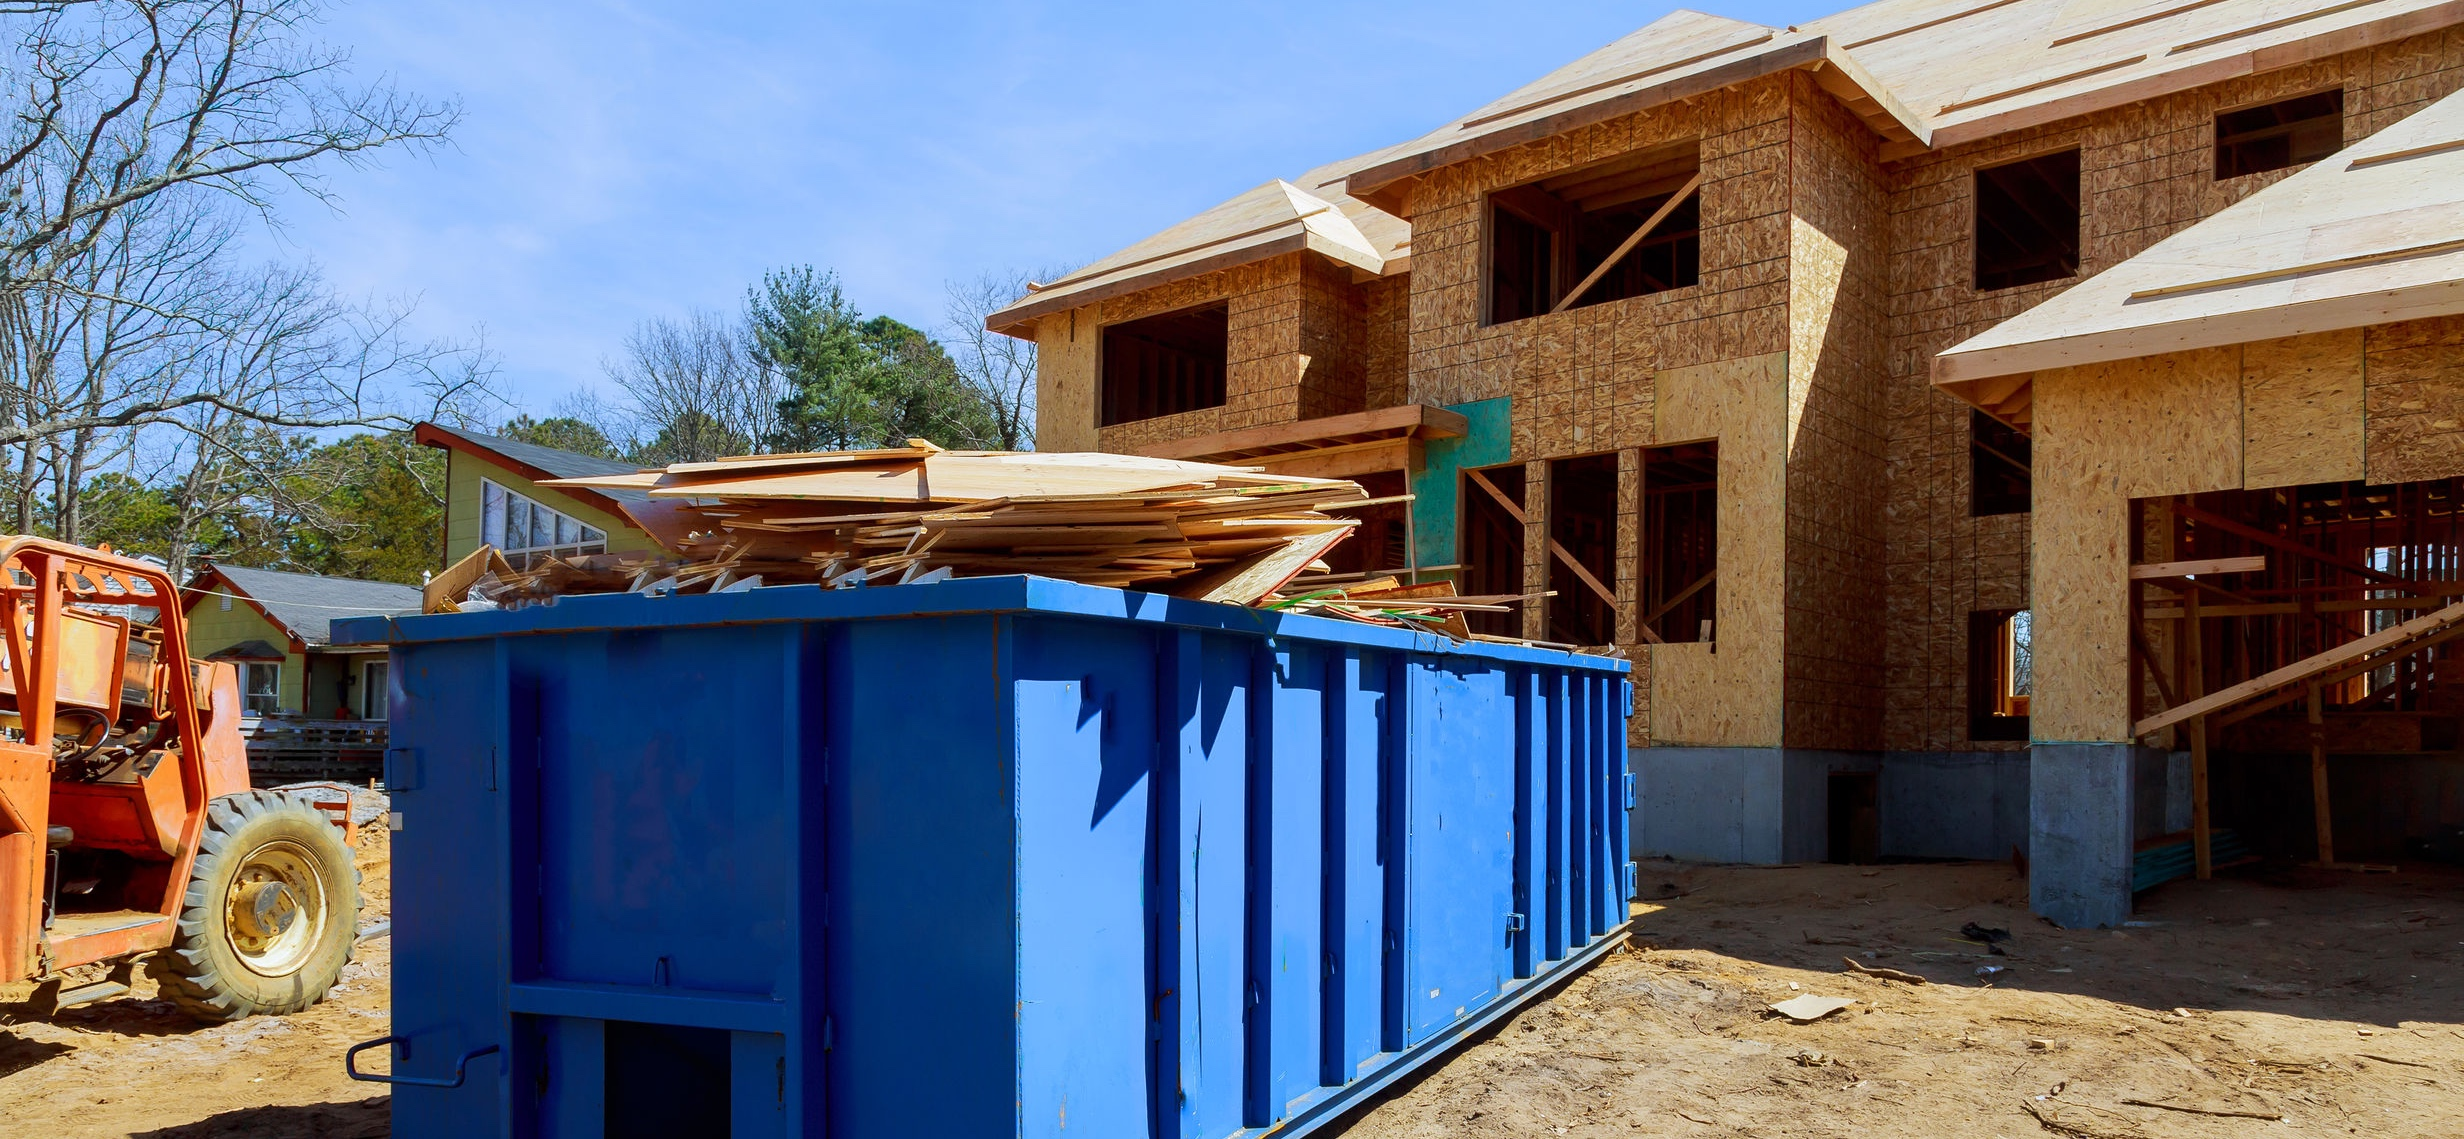 Dumpster and construction materials at building site